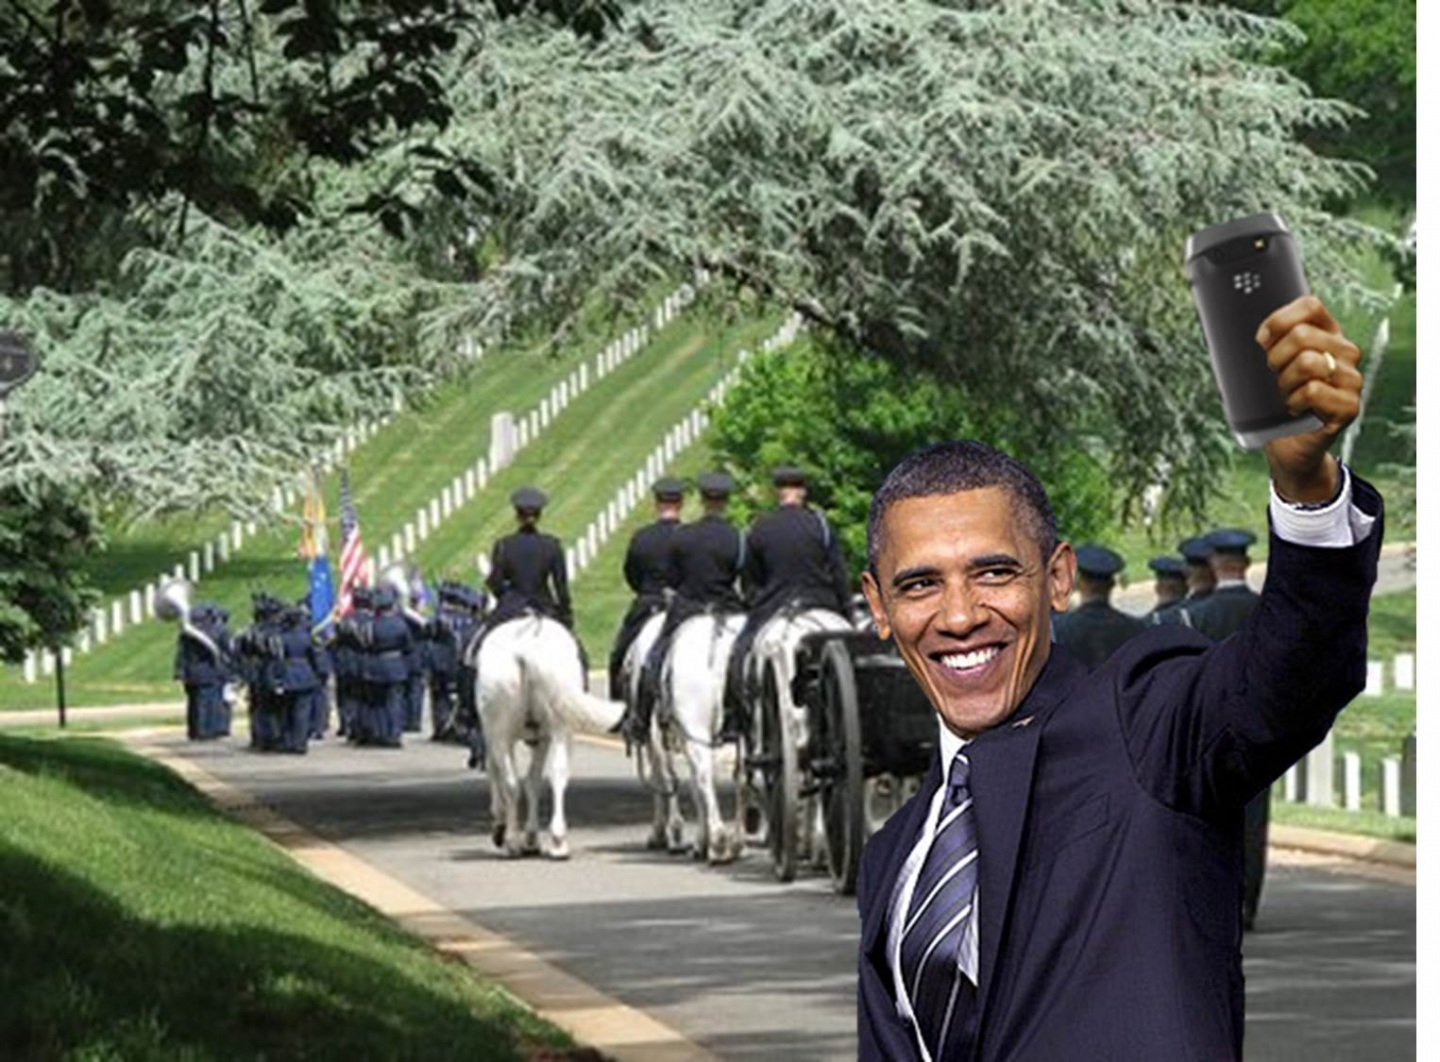 http://us.cdn283.fansshare.com/photo/selfie/obama-selfie-vet-funeral-obama-1639871112.jpg